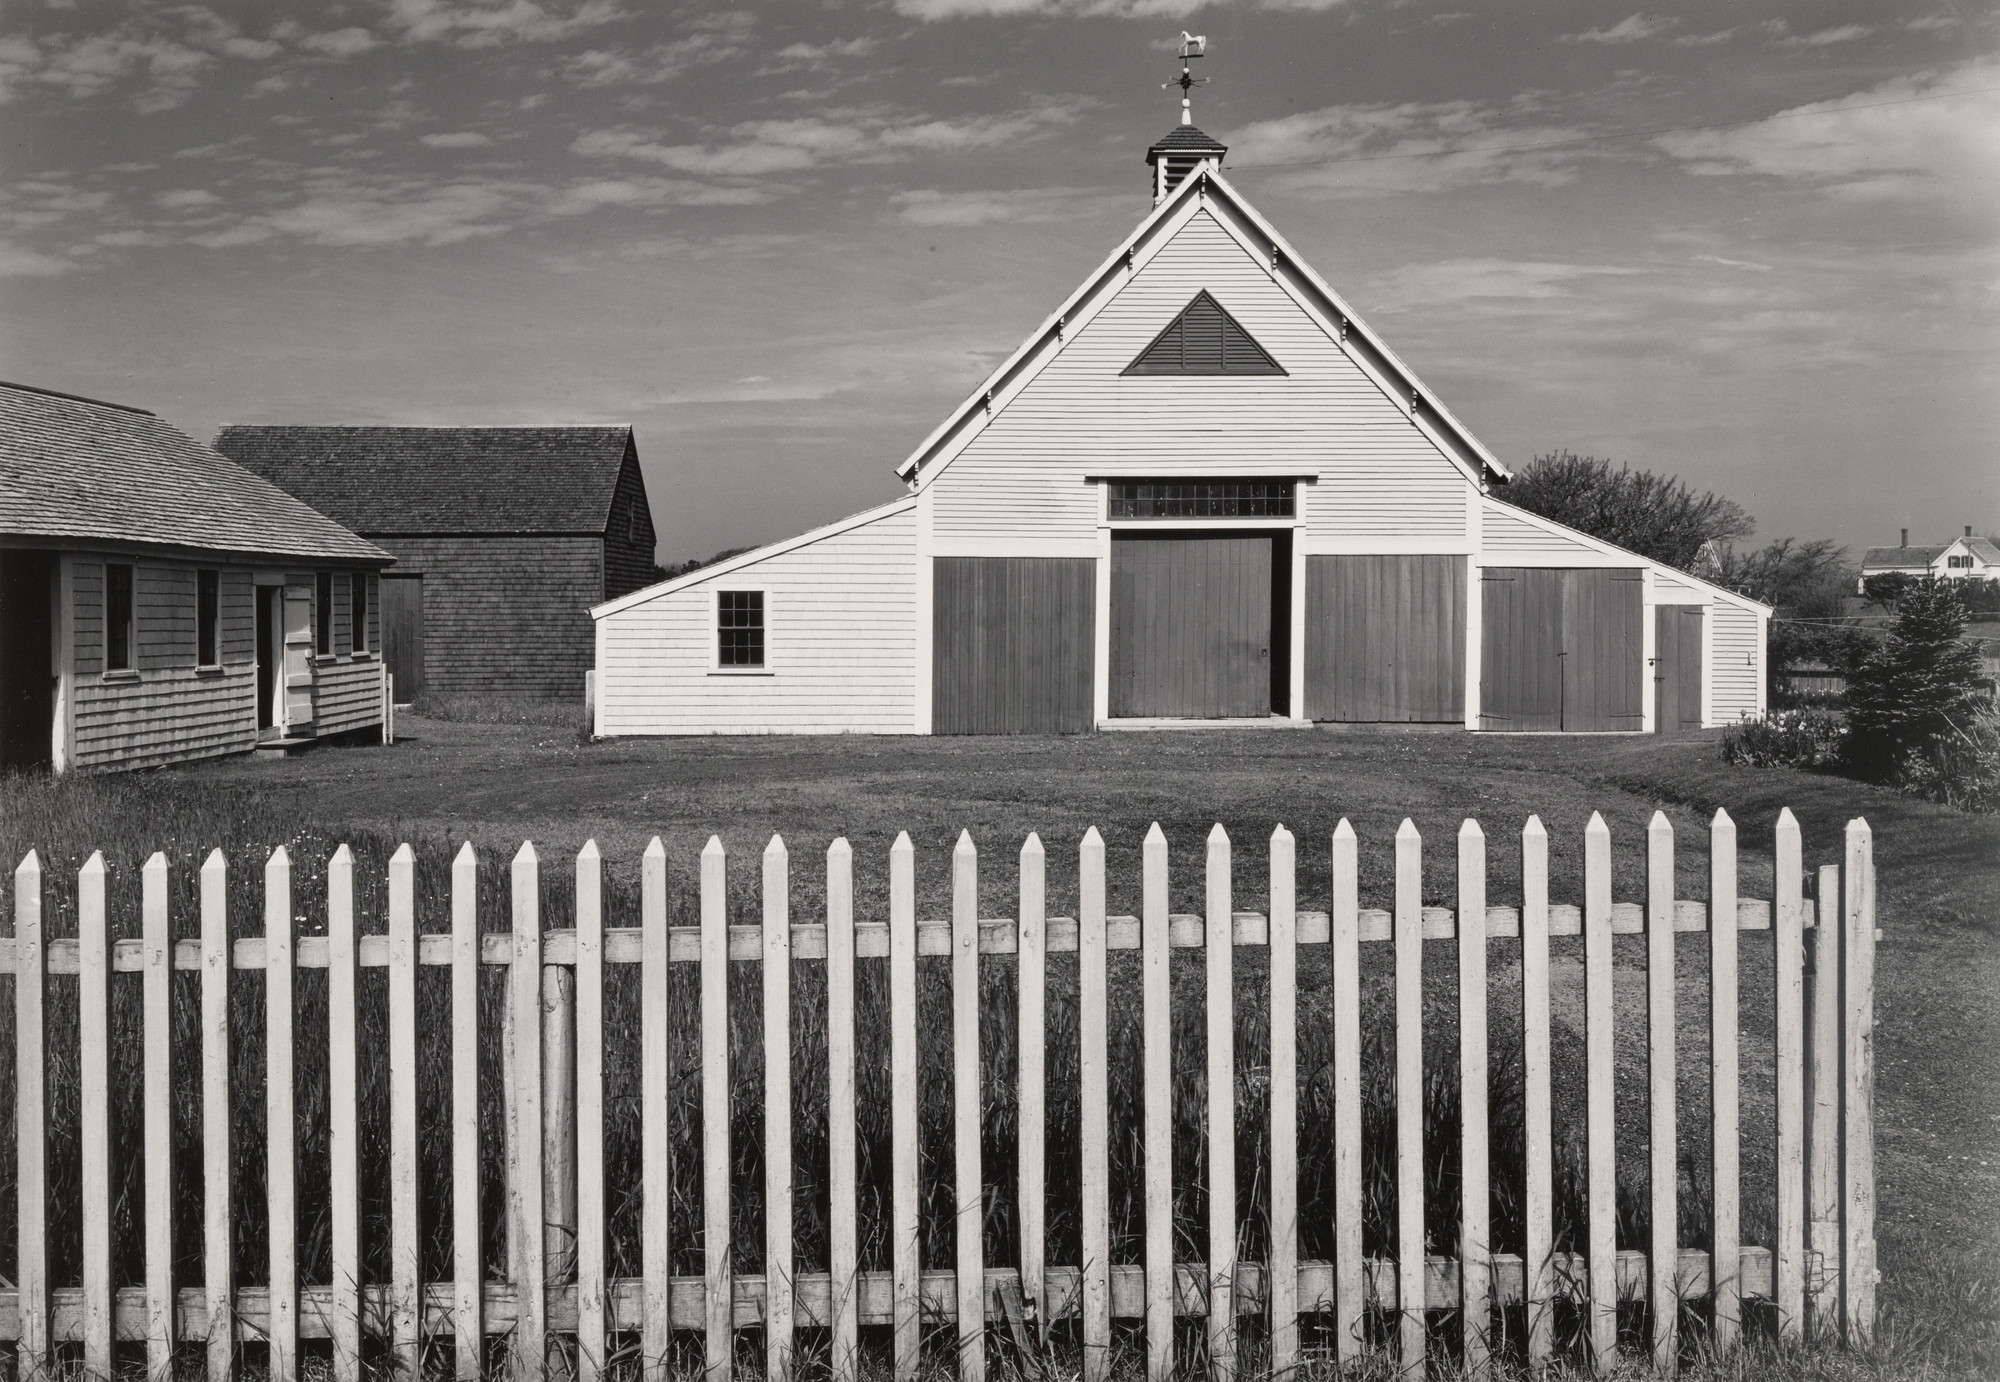 Ansel Adams. Barn Fence, Cape Cod. 1939